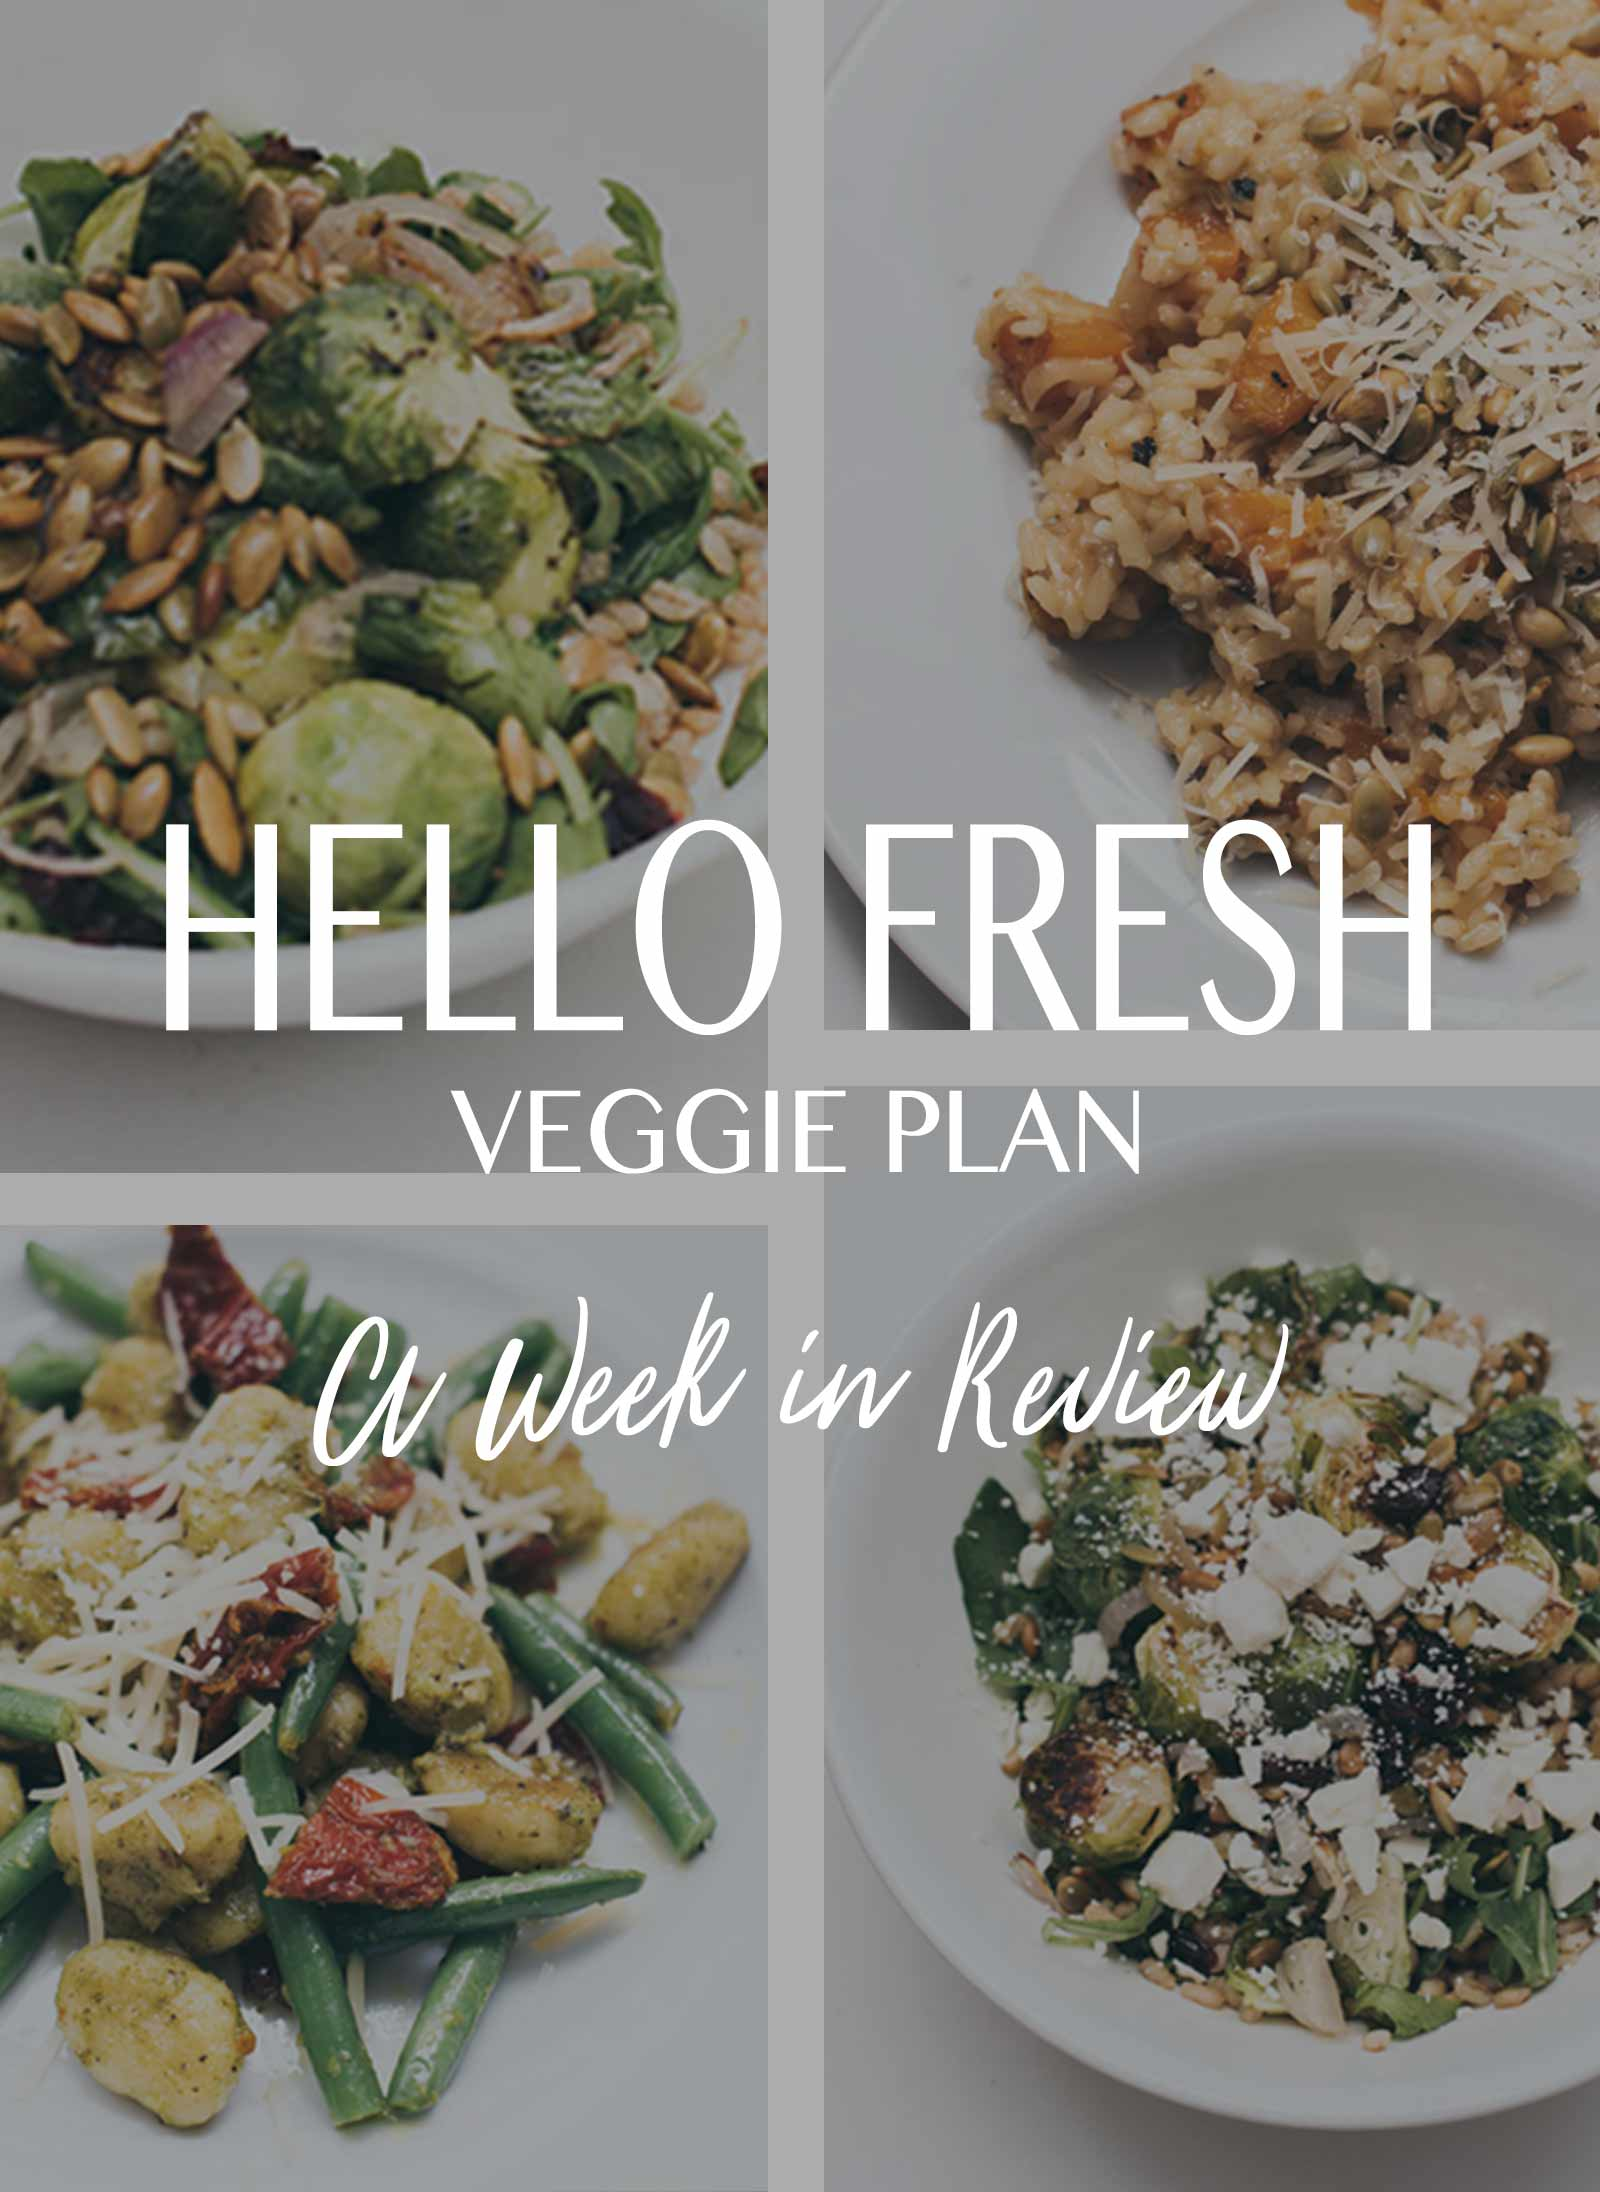 Hellofresh Meal Kit Delivery Service Student Discount April 2020